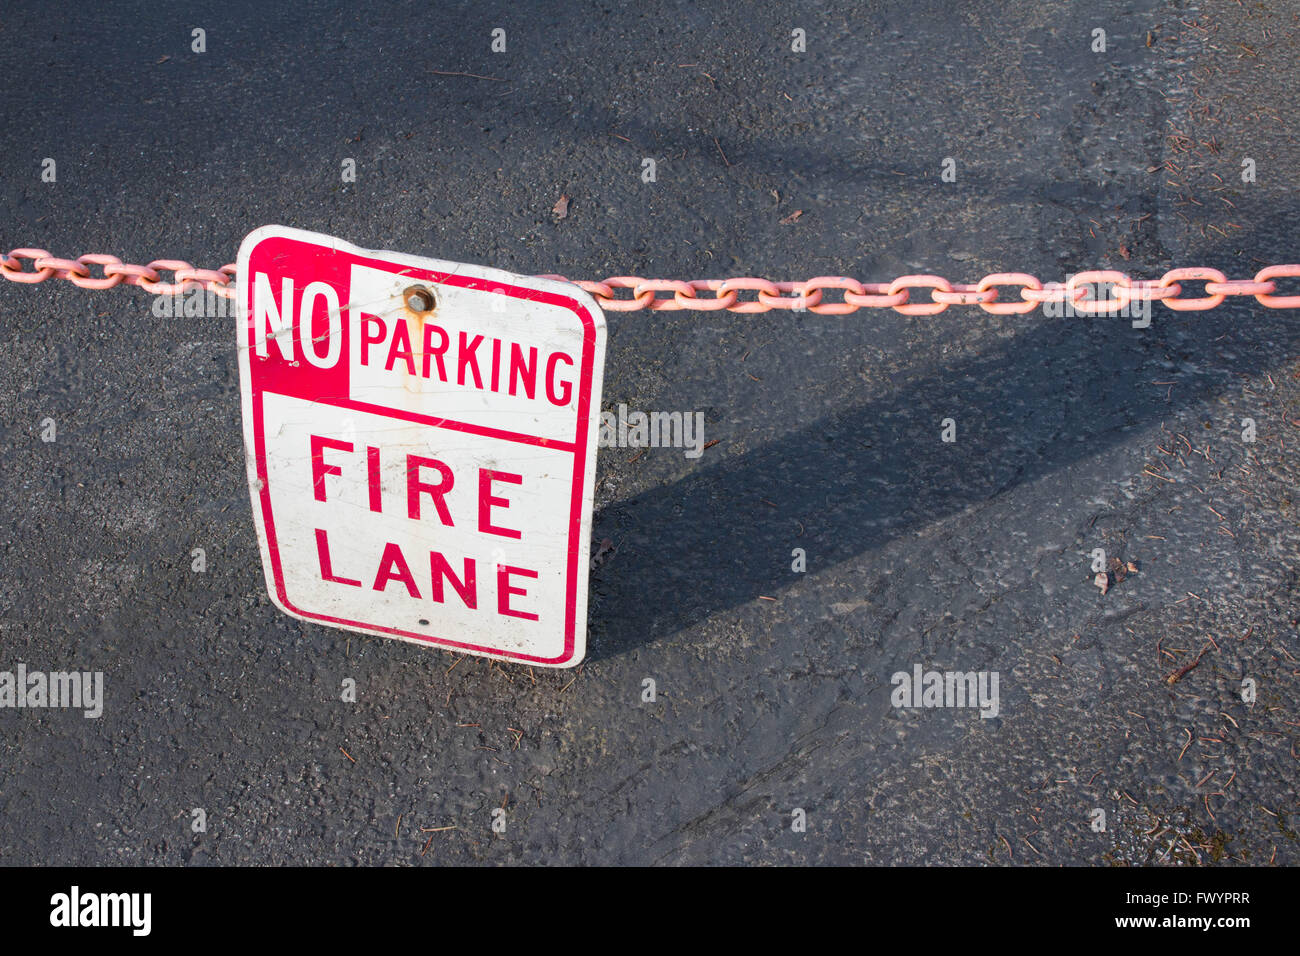 No parking fire lane signStock Photo